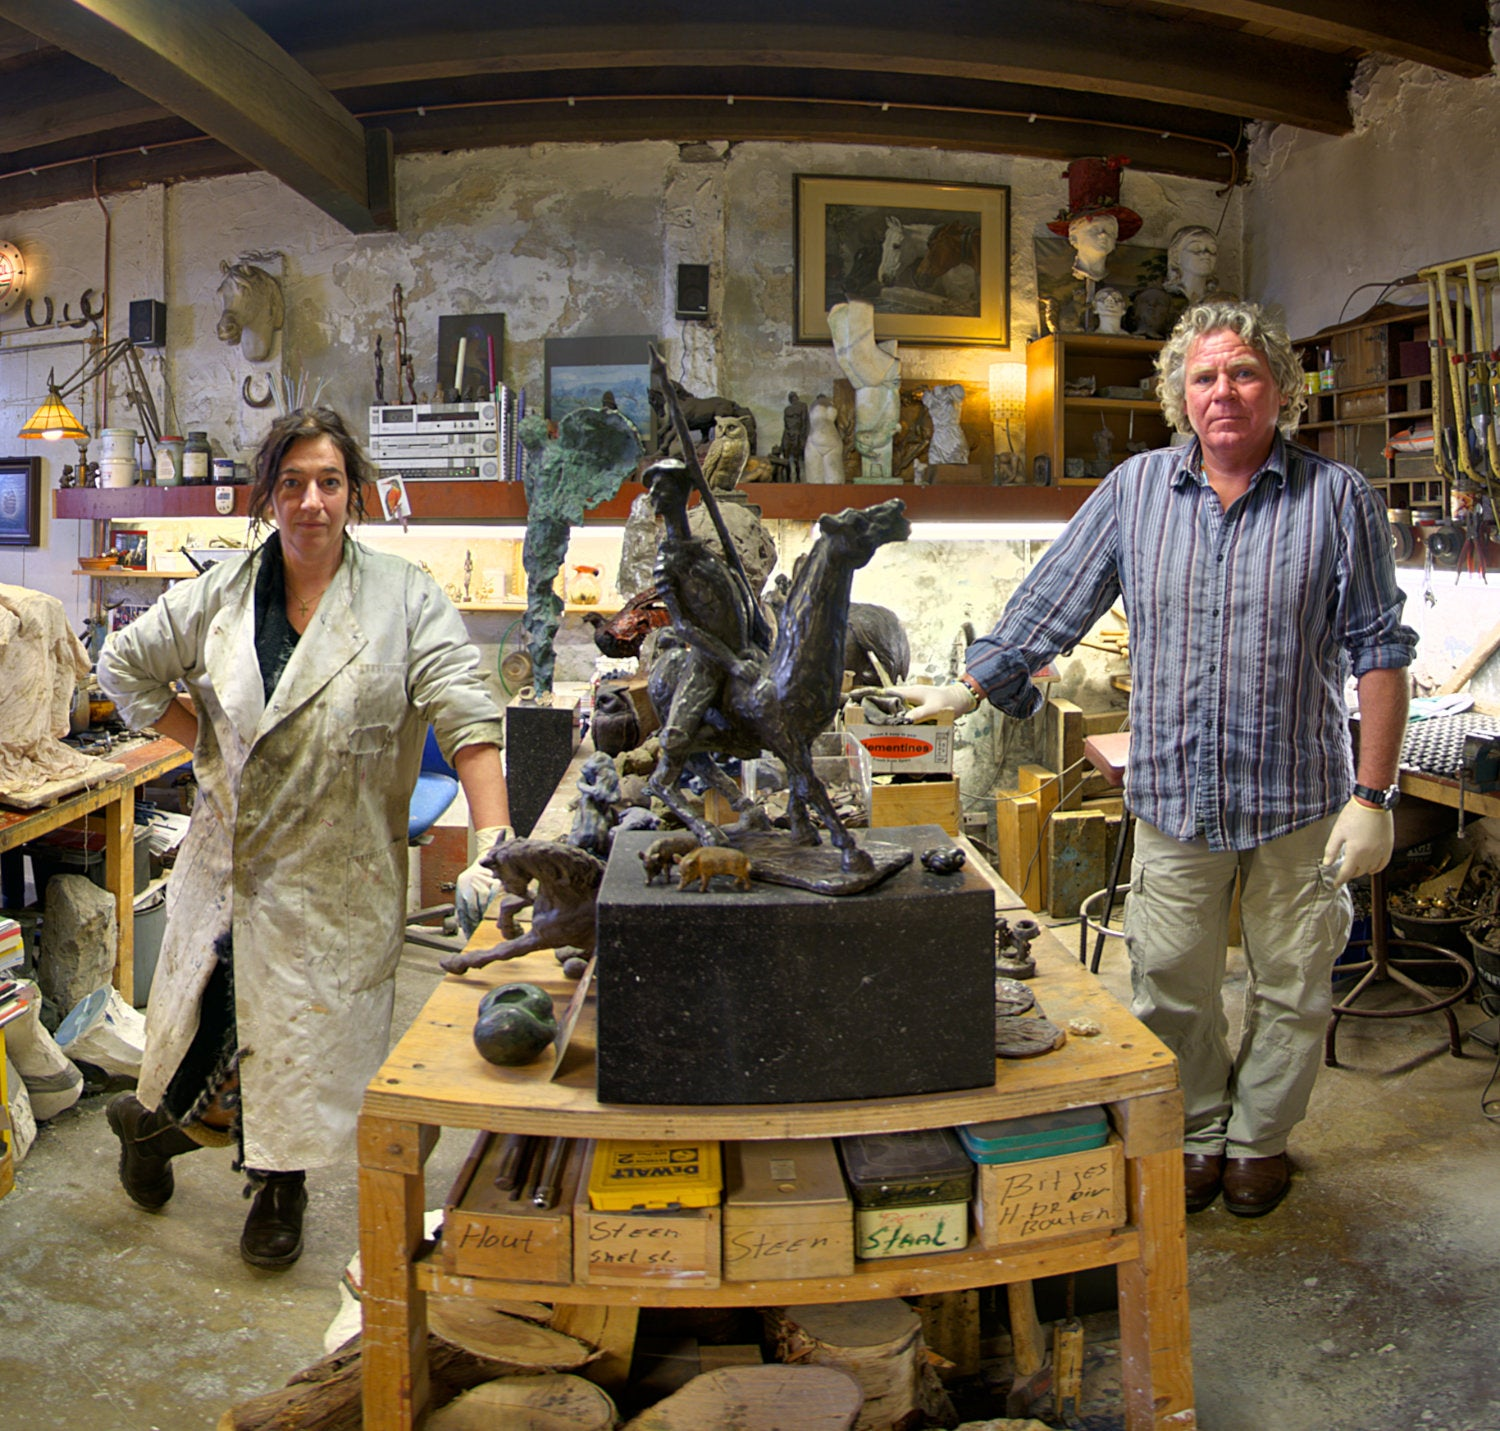 The (close) Encounters Project - Part 07 - Ron & Nathalie - Bronzefoundry & ArtGallery De Paardenstal - The Horse Stable - HDR Panorama portrait  - Close